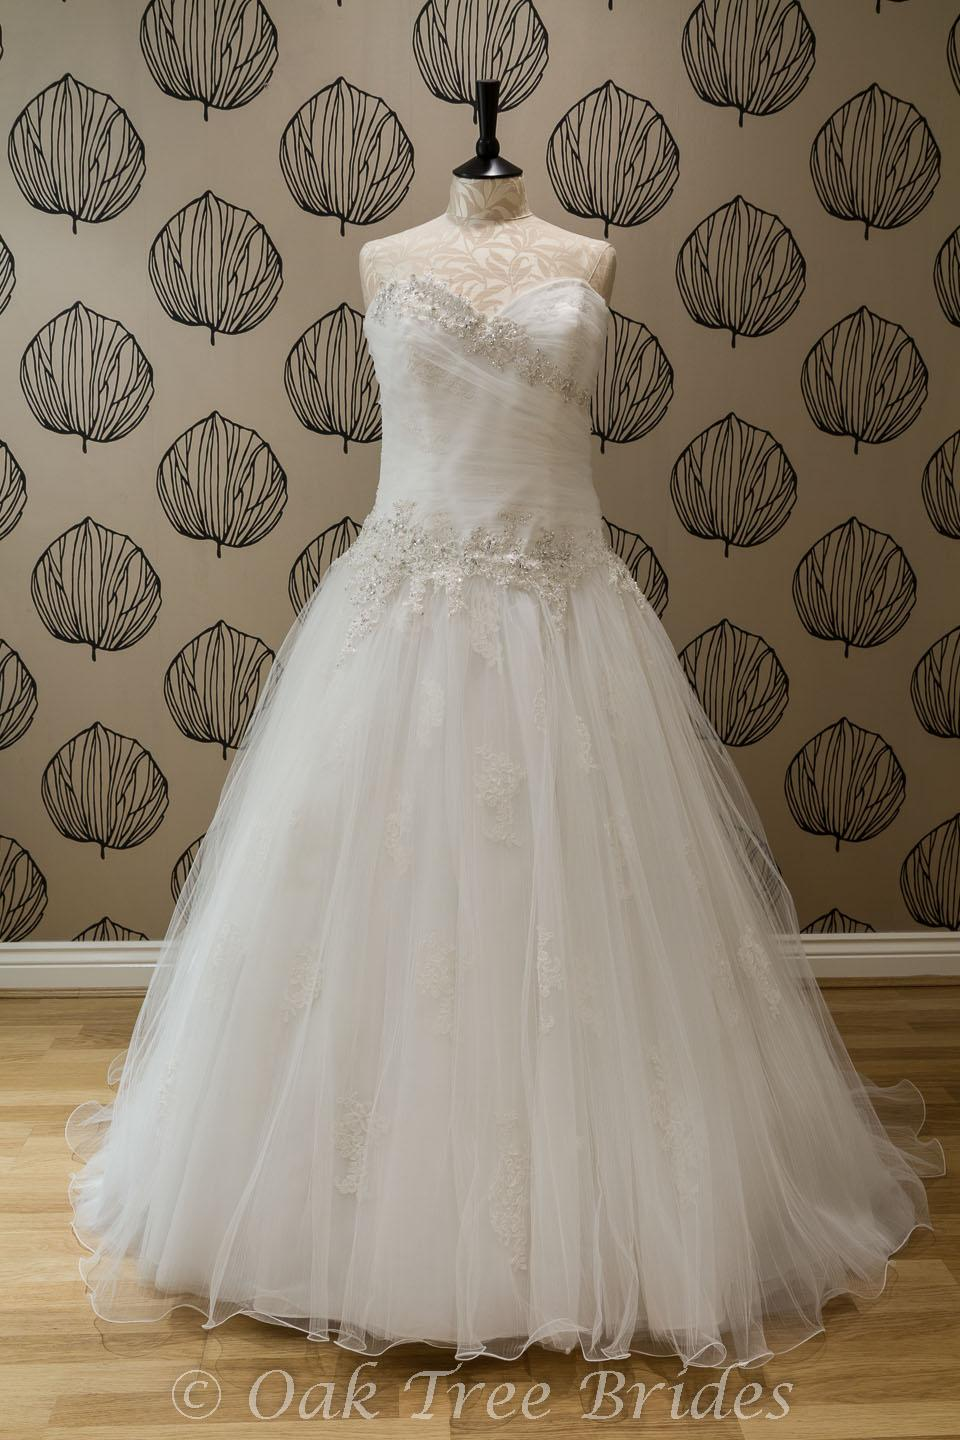 Designer Weddings Dresses Size 18 Oak Tree Brides